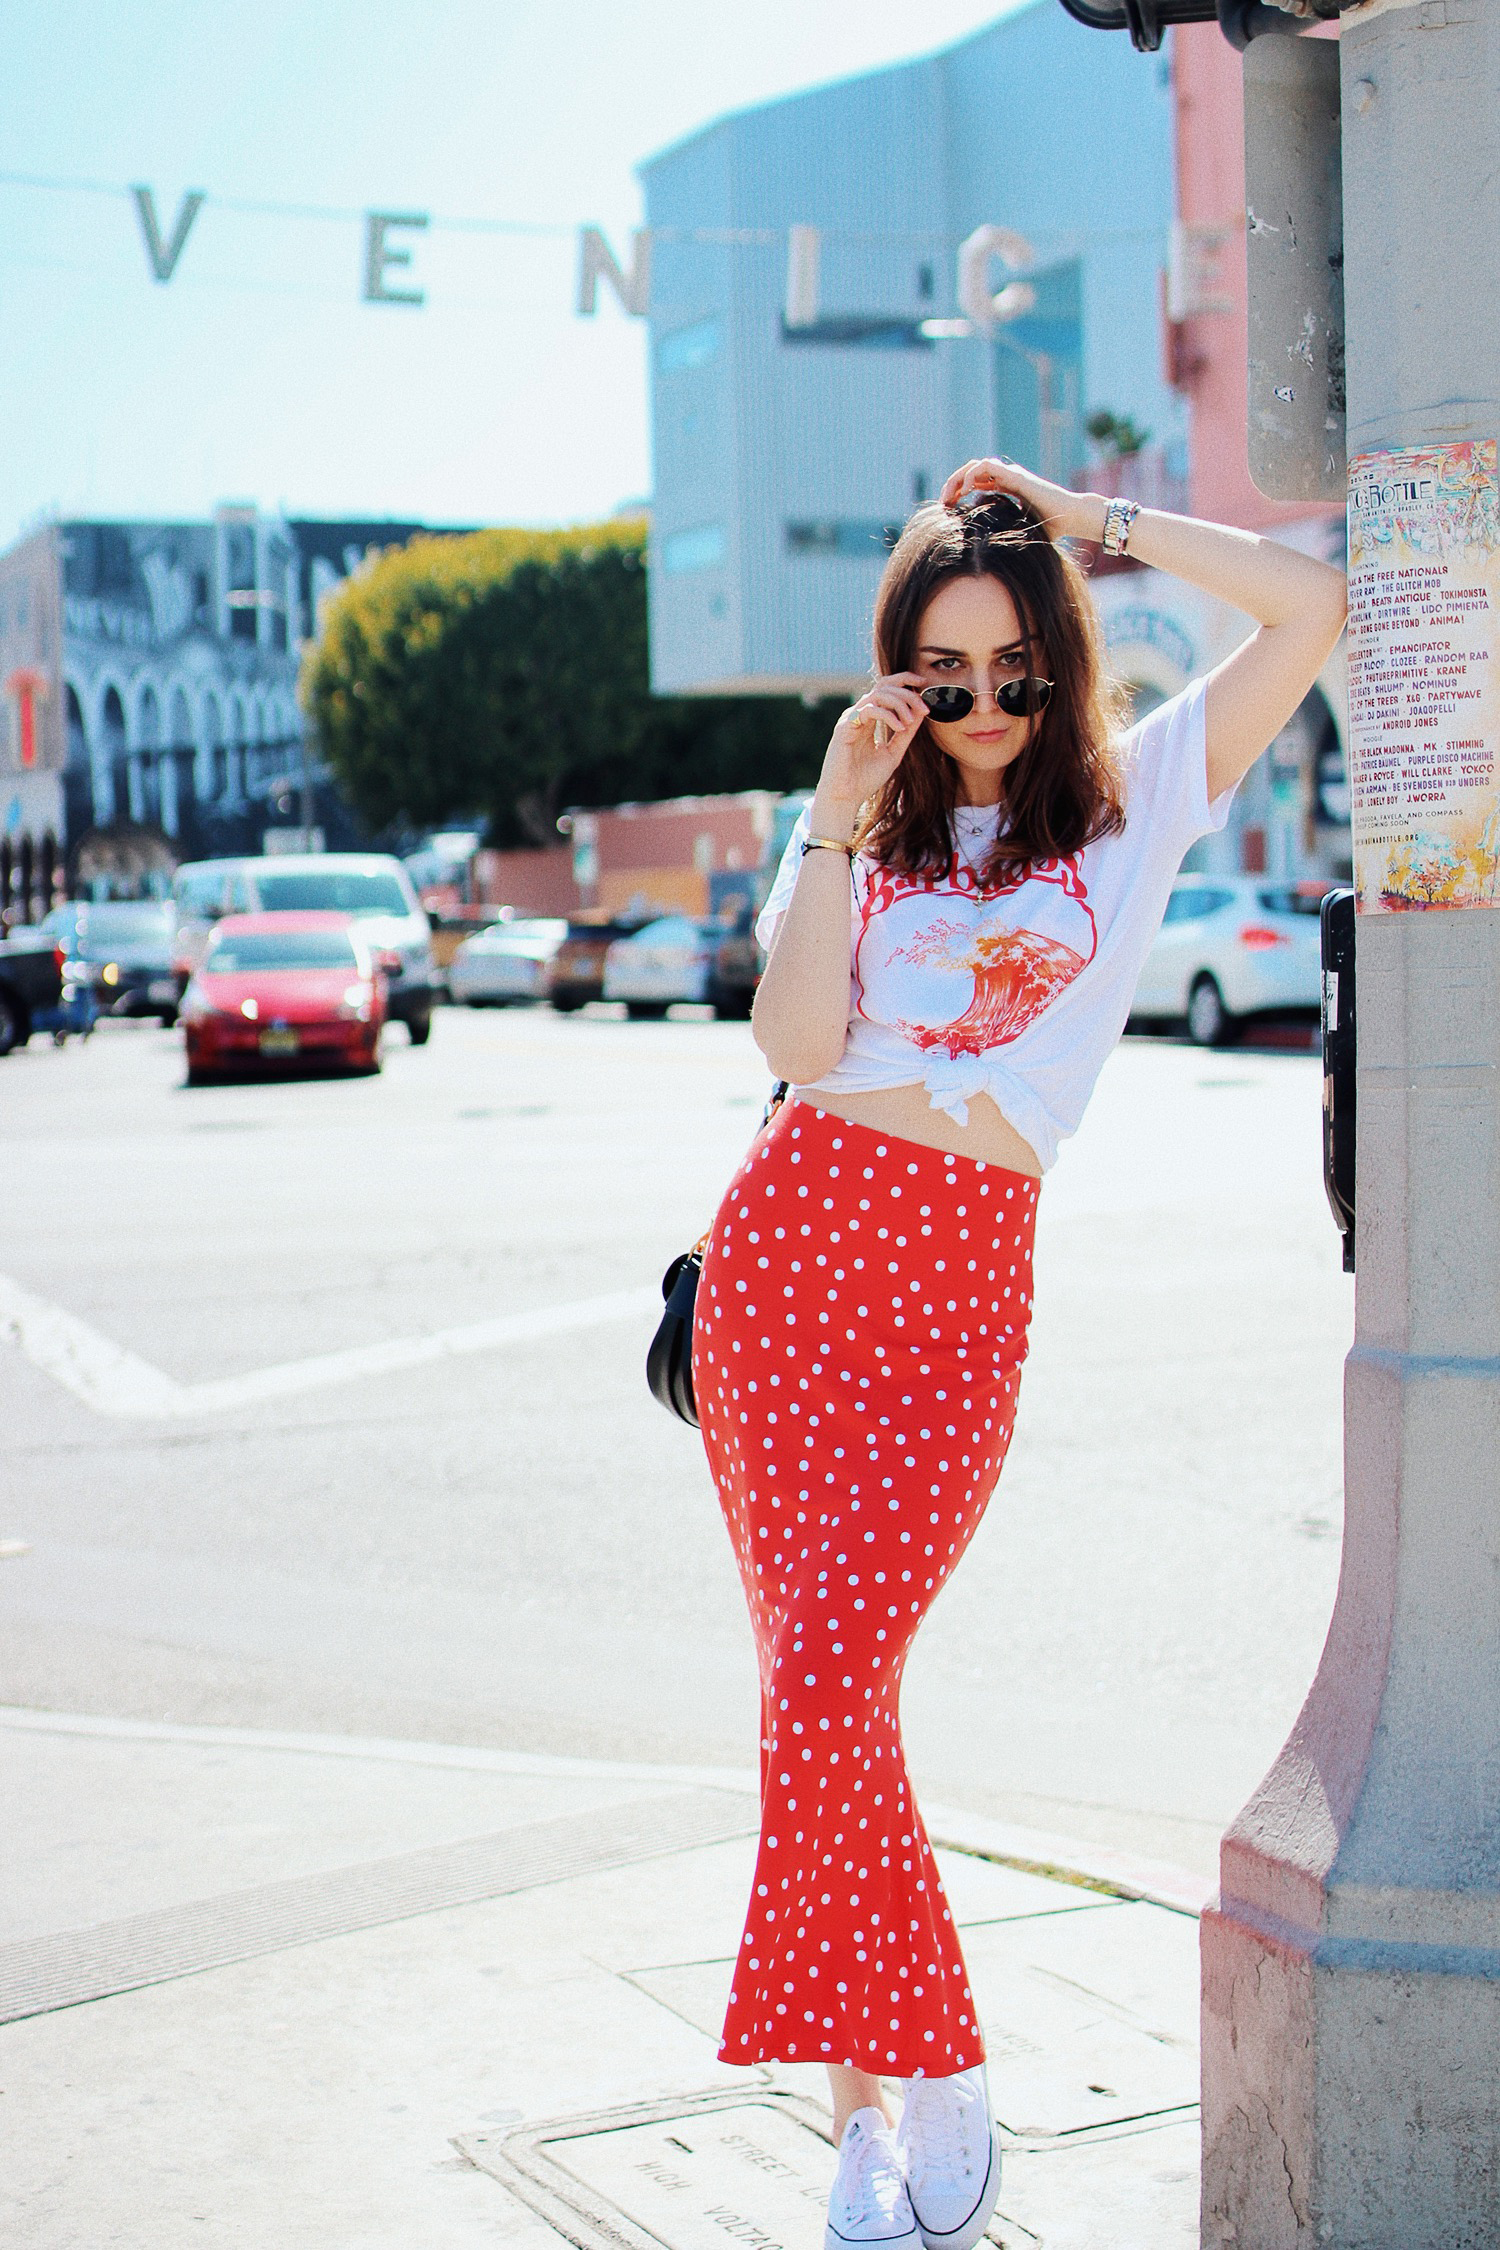 THE SKIRT YOU NEED THIS SUMMER